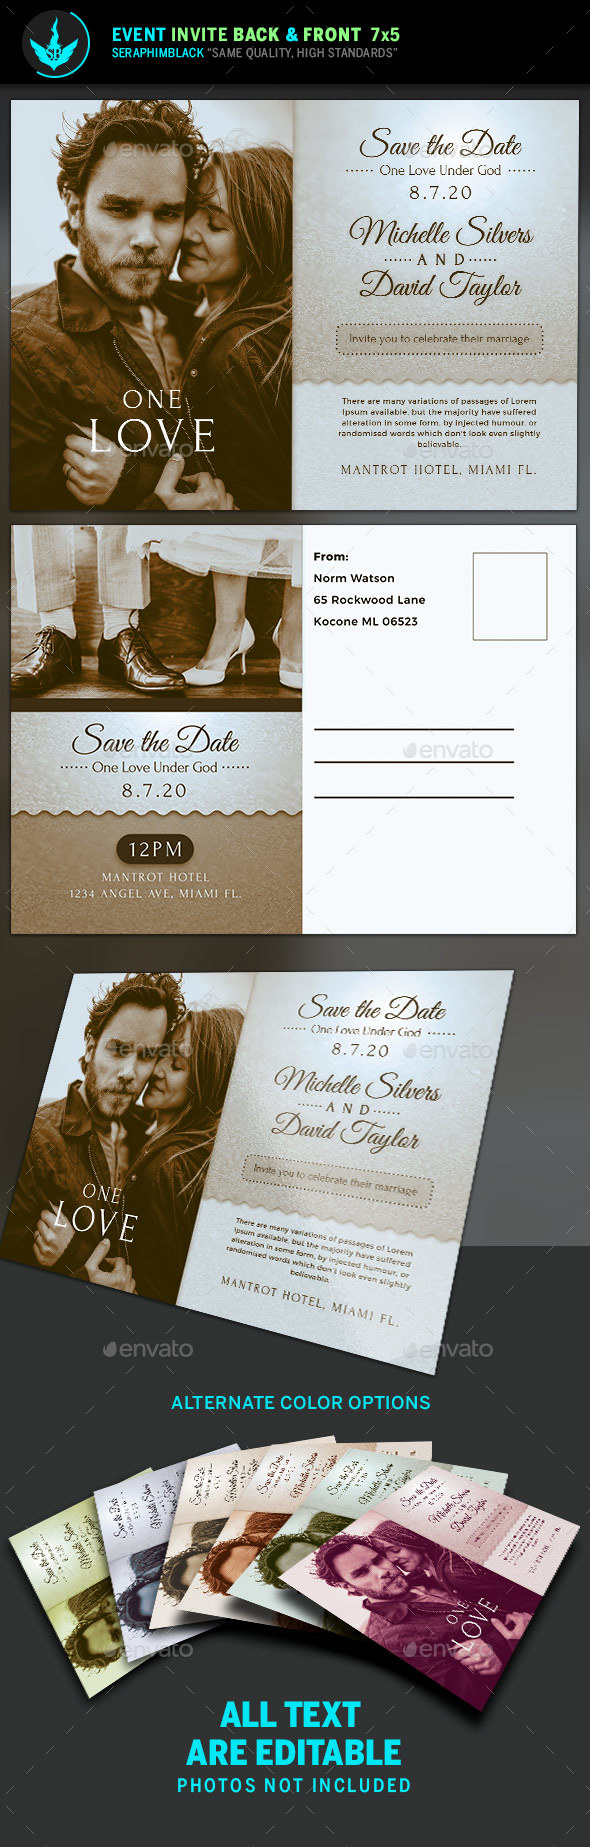 Retro Wedding Invite Template - Invitations Cards & Invites